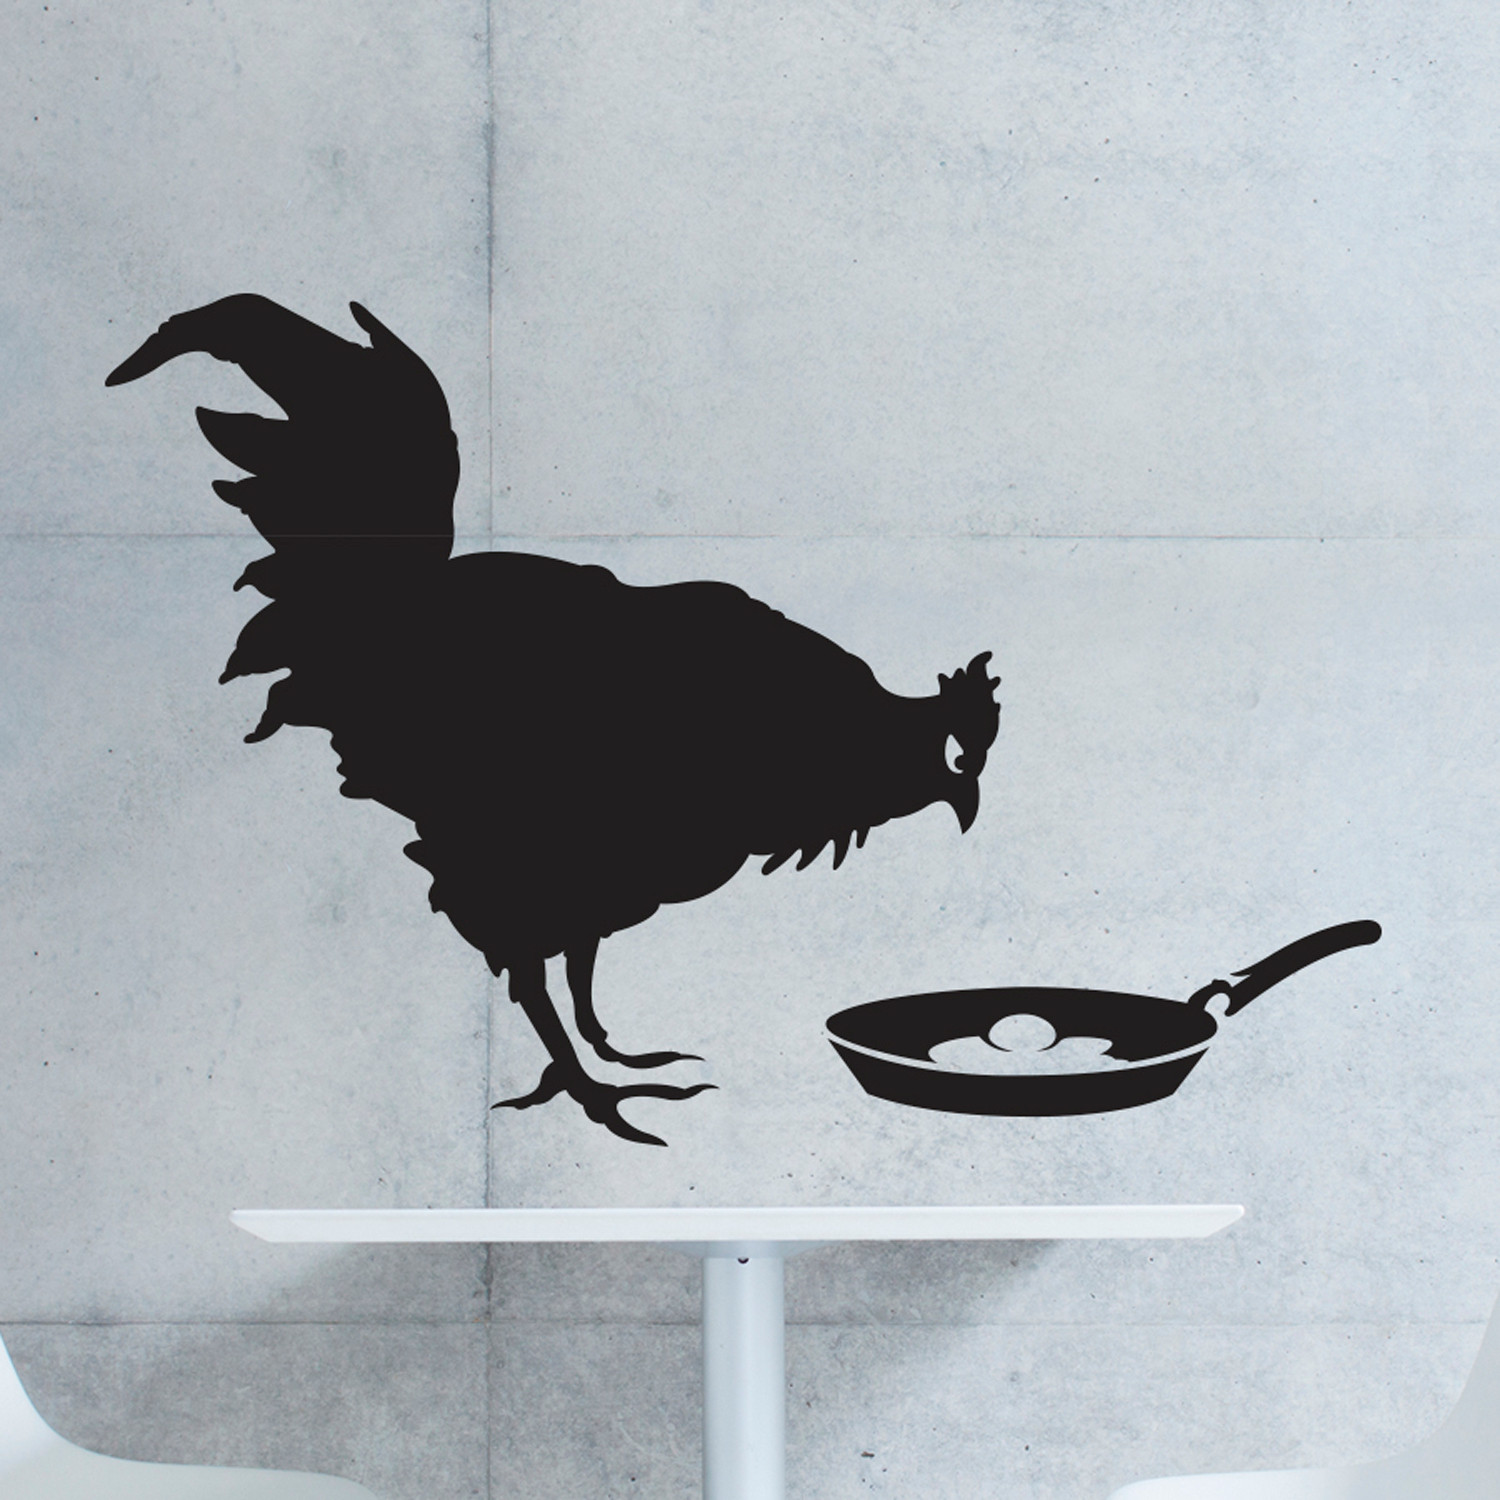 Chicken or the Egg - Walls Need Love - Touch of Modern